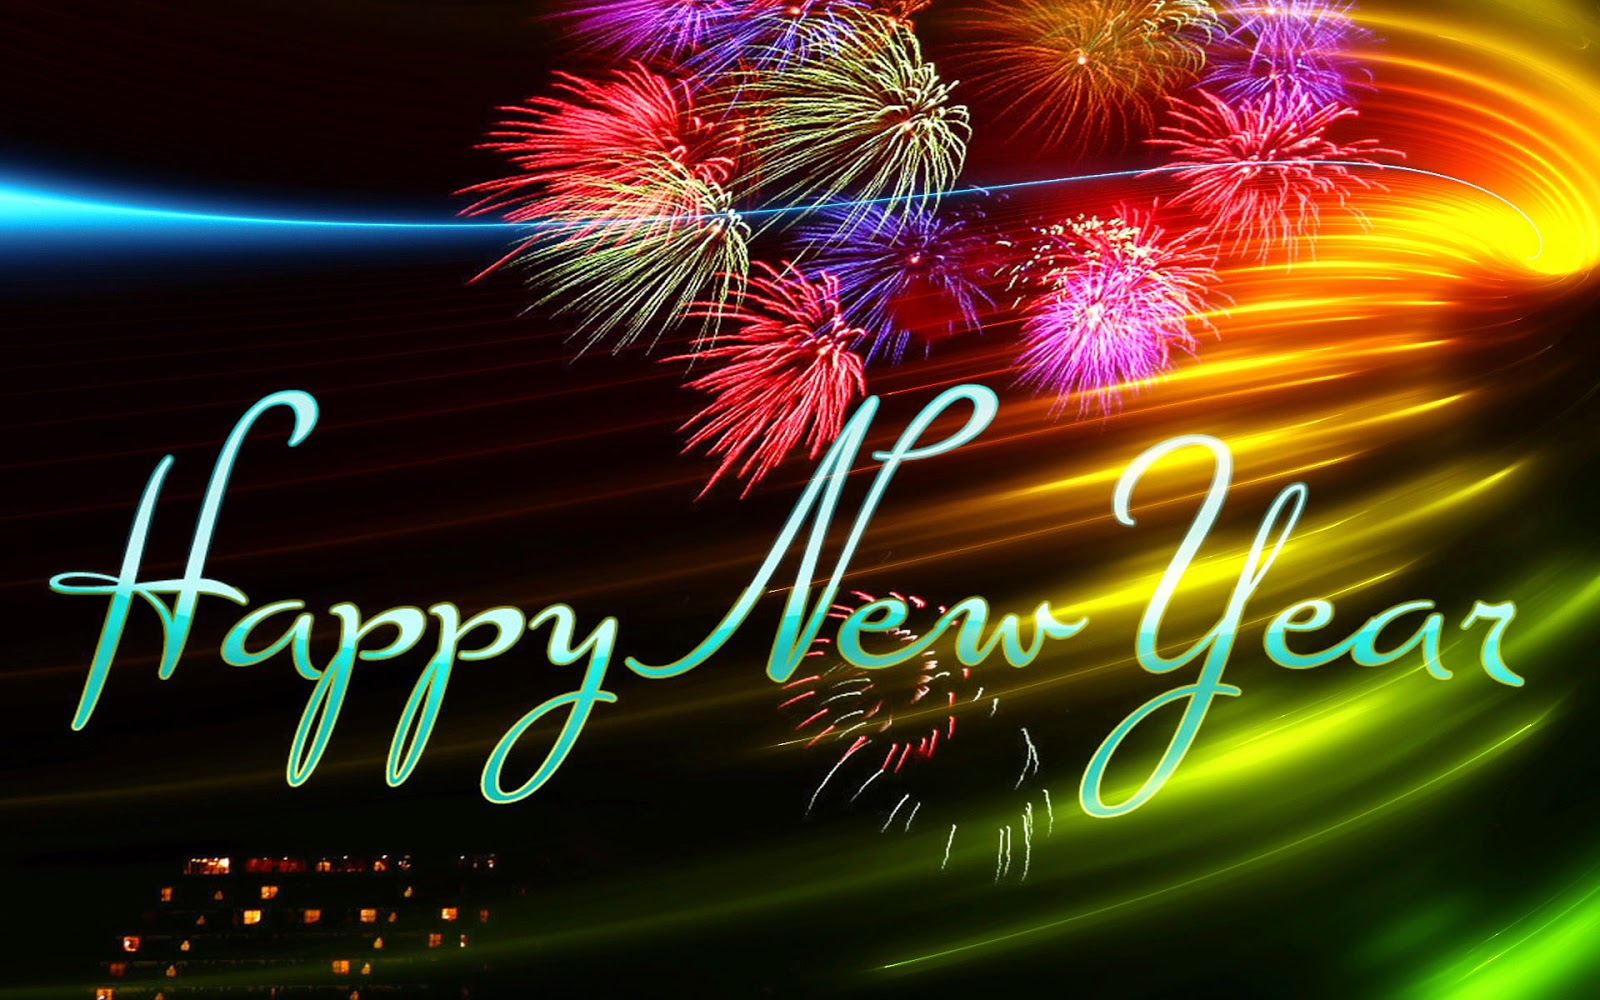 happy new year 2016 welcome new year wallpaper 2016 wallpaper download 1600x1000